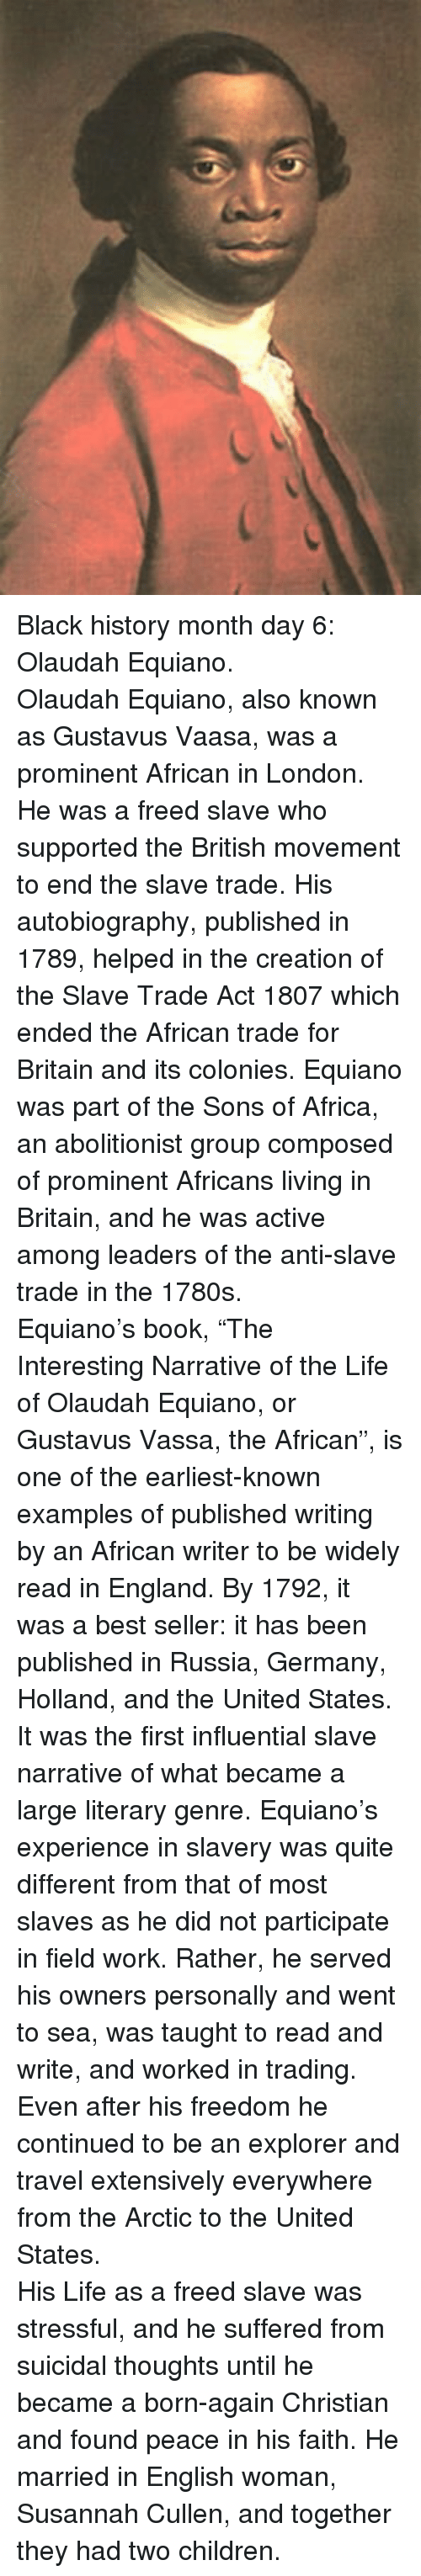 "Africa, Black History Month, and Children: <p>Black history month day 6: Olaudah Equiano.<br/></p> <p>Olaudah Equiano, also known as Gustavus Vaasa, was a prominent African in London. He was a freed slave who supported the British movement to end the slave trade. His autobiography, published in 1789, helped in the creation of the Slave Trade Act 1807 which ended the African trade for Britain and its colonies. Equiano was part of the Sons of Africa, an abolitionist group composed of prominent Africans living in Britain, and he was active among leaders of the anti-slave trade in the 1780s.</p>  <p>Equiano's book, ""The Interesting Narrative of the Life of Olaudah Equiano, or Gustavus Vassa, the African"", is one of the earliest-known examples of published writing by an African writer to be widely read in England. By 1792, it was a best seller: it has been published in Russia, Germany, Holland, and the United States. It was the first influential slave narrative of what became a large literary genre. Equiano's experience in slavery was quite different from that of most slaves as he did not participate in field work. Rather, he served his owners personally and went to sea, was taught to read and write, and worked in trading. Even after his freedom he continued to be an explorer and travel extensively everywhere from the Arctic to the United States.</p>  <p>His Life as a freed slave was stressful, and he suffered from suicidal thoughts until he became a born-again Christian and found peace in his faith. He married in English woman, Susannah Cullen, and together they had two children.</p>"